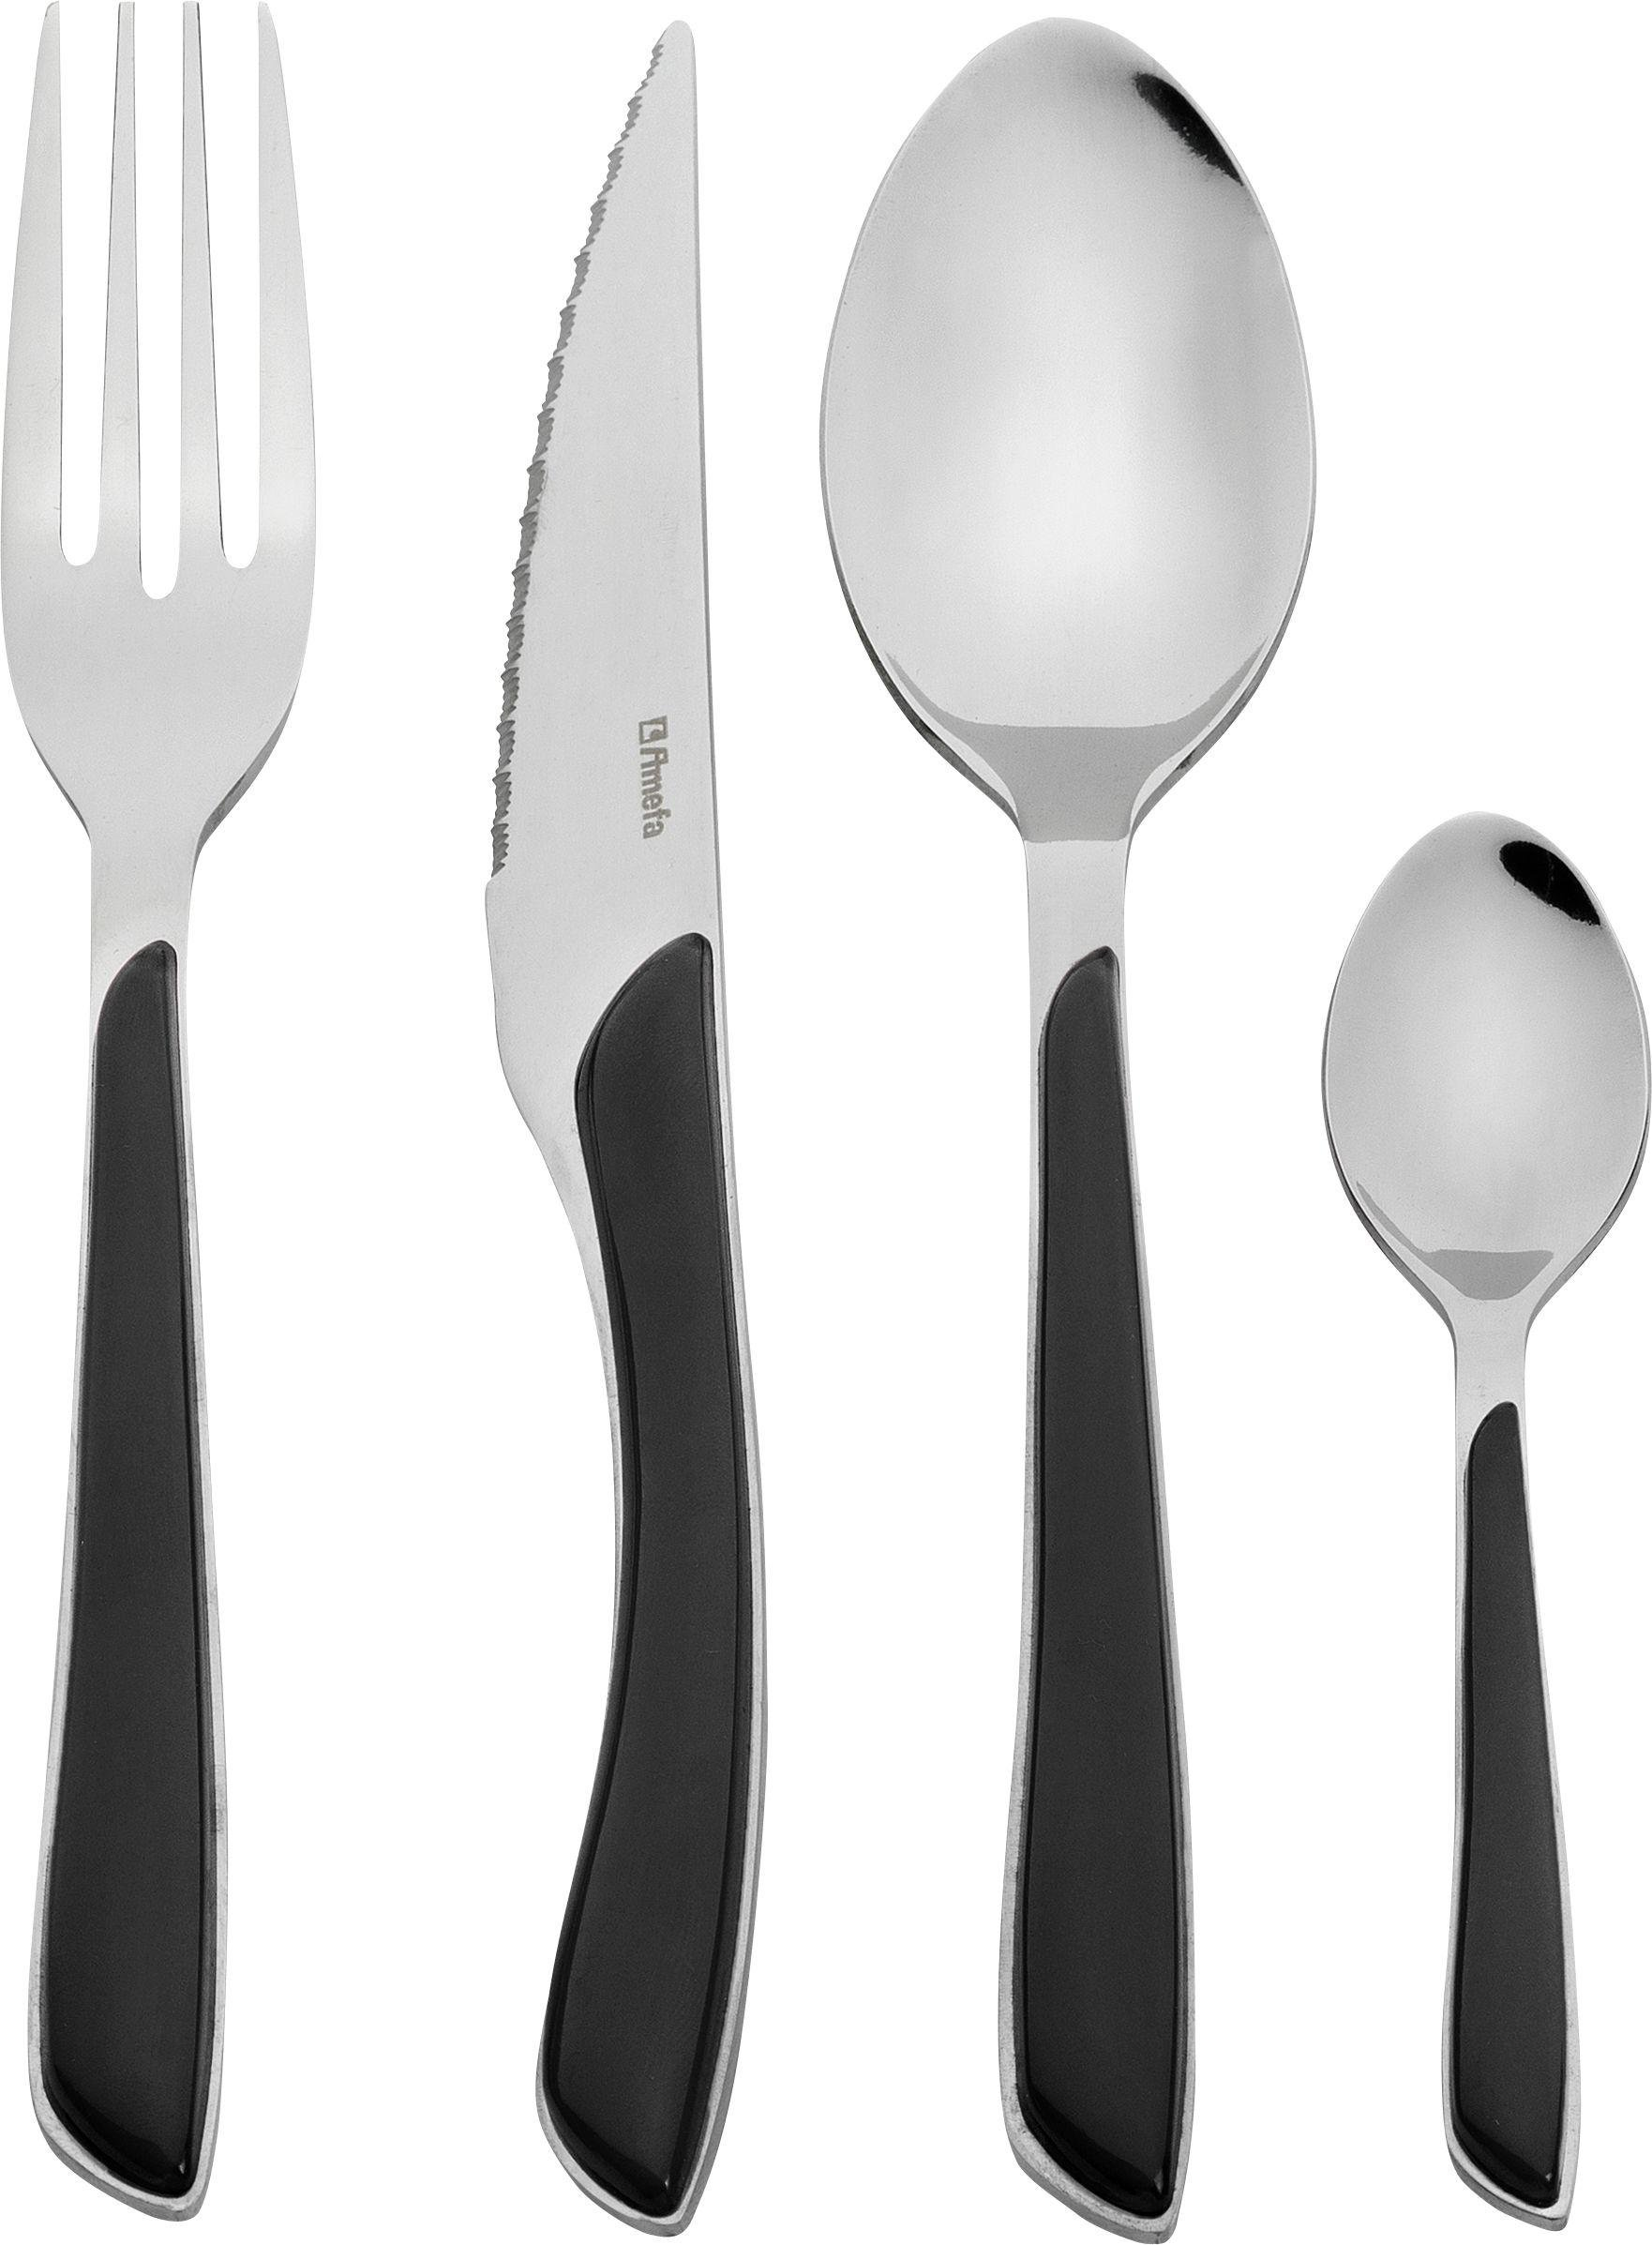 Image of Amefa Eclat 24 Piece Black Cutlery Set